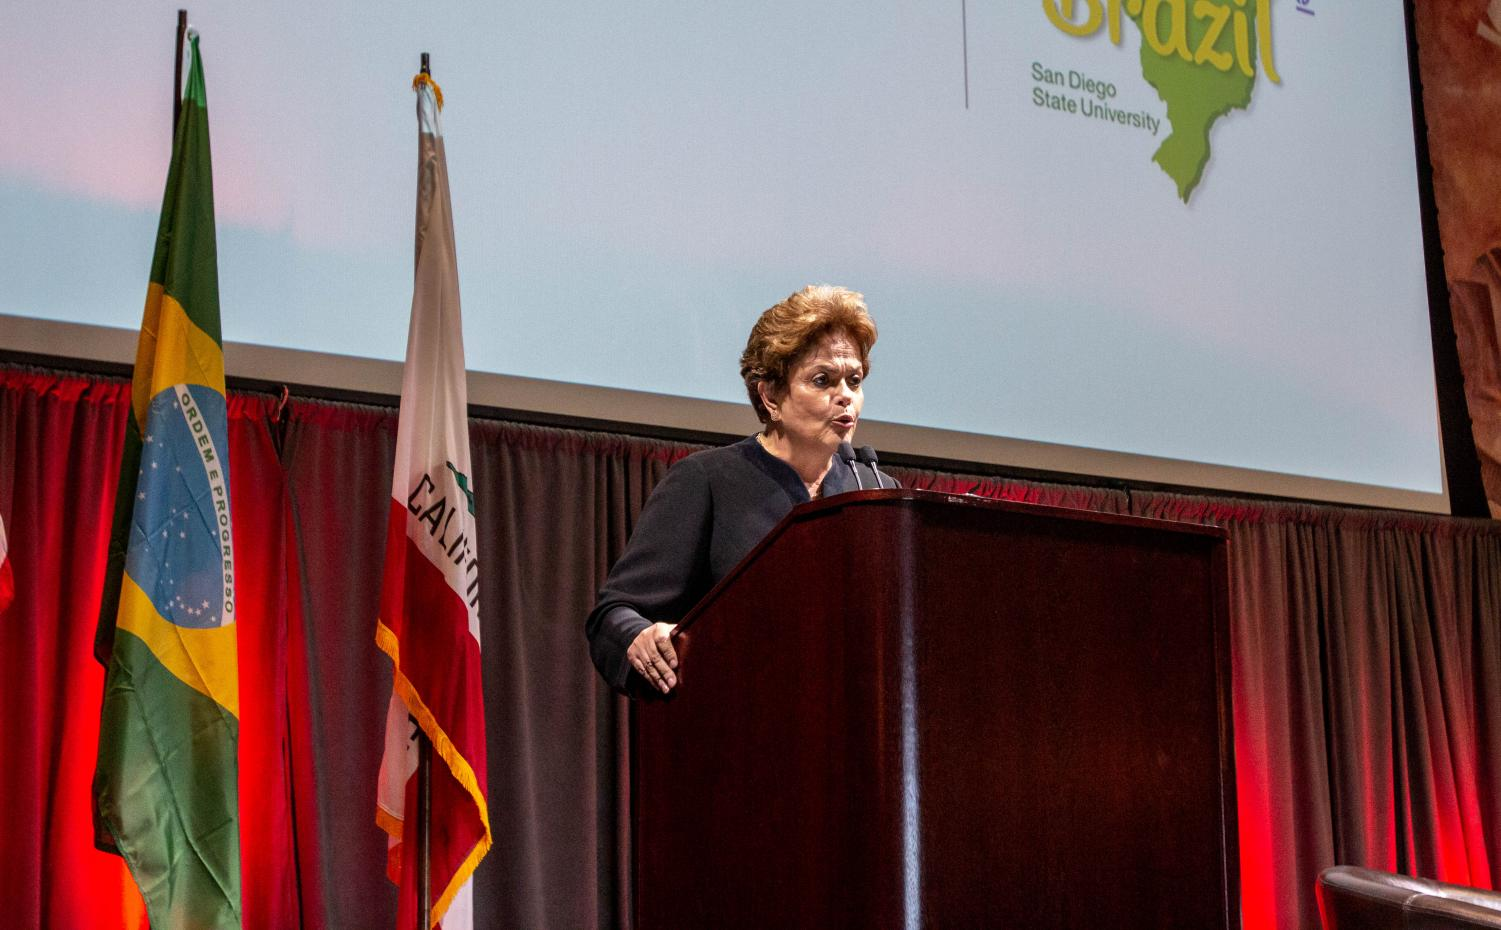 Former president Dilma Rousseff speaks about Brazil's political issues on April 19, inside Montezuma Hall at San Diego State.